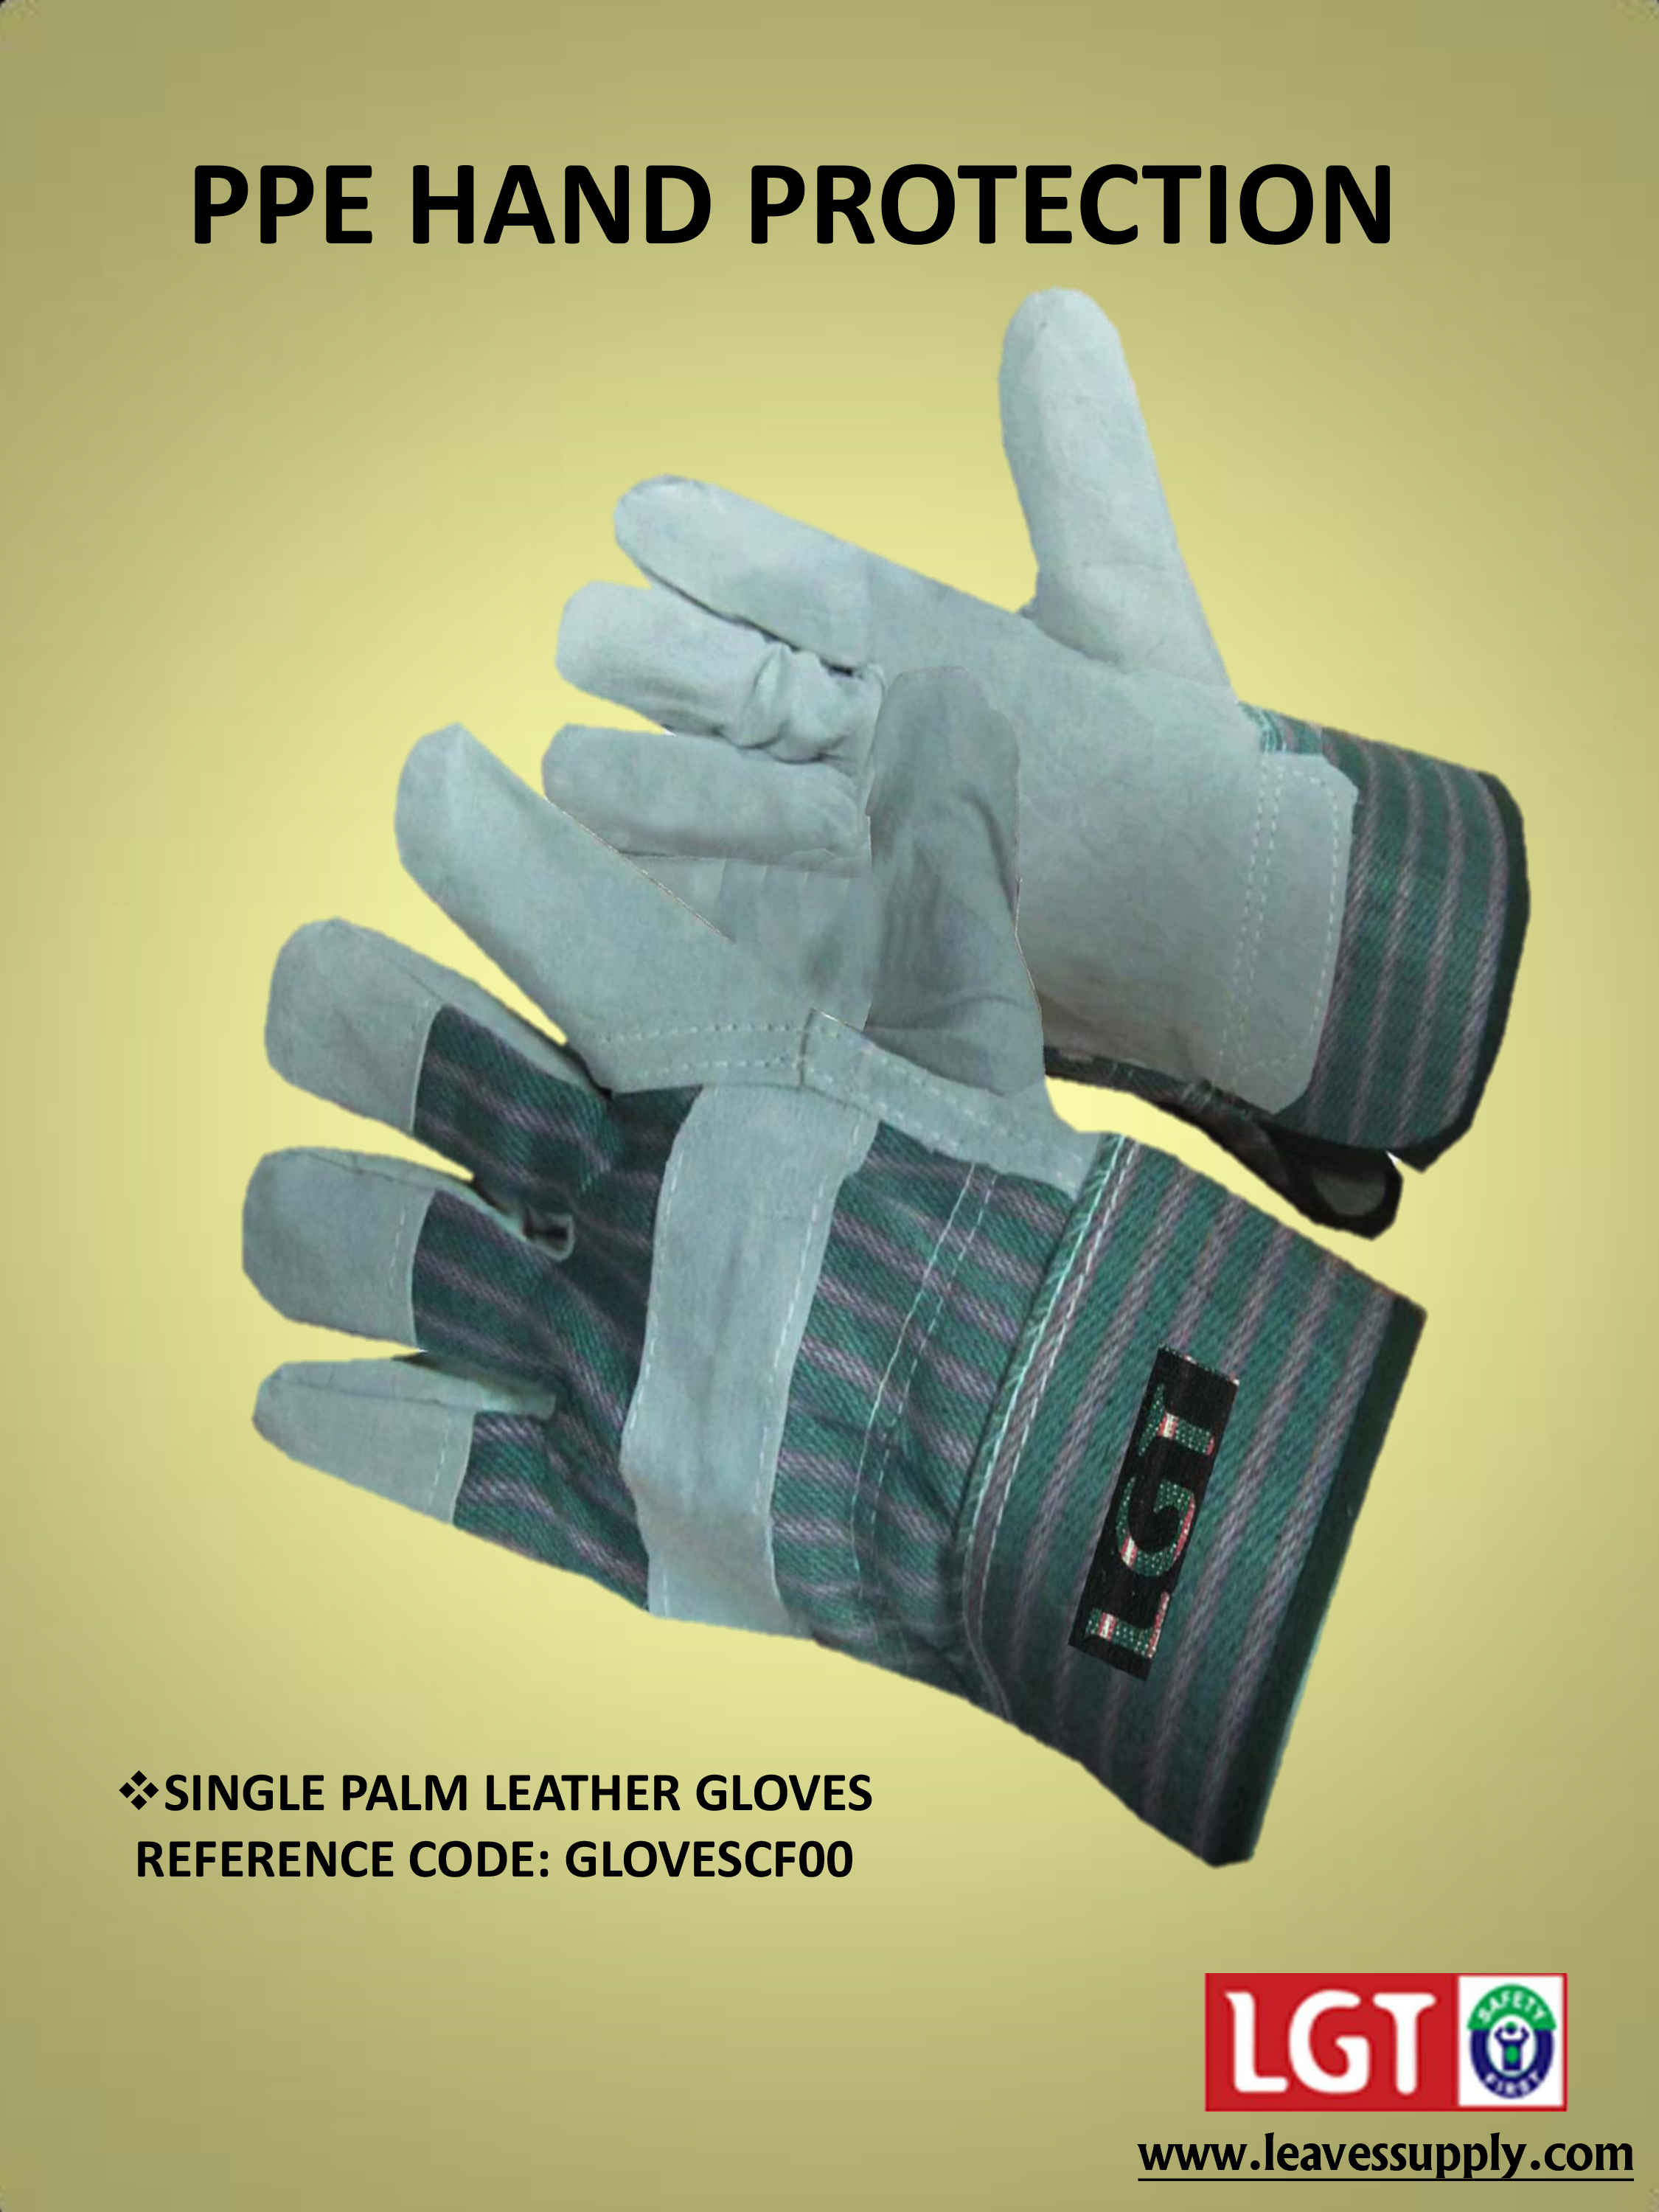 Single Palm Leather Gloves